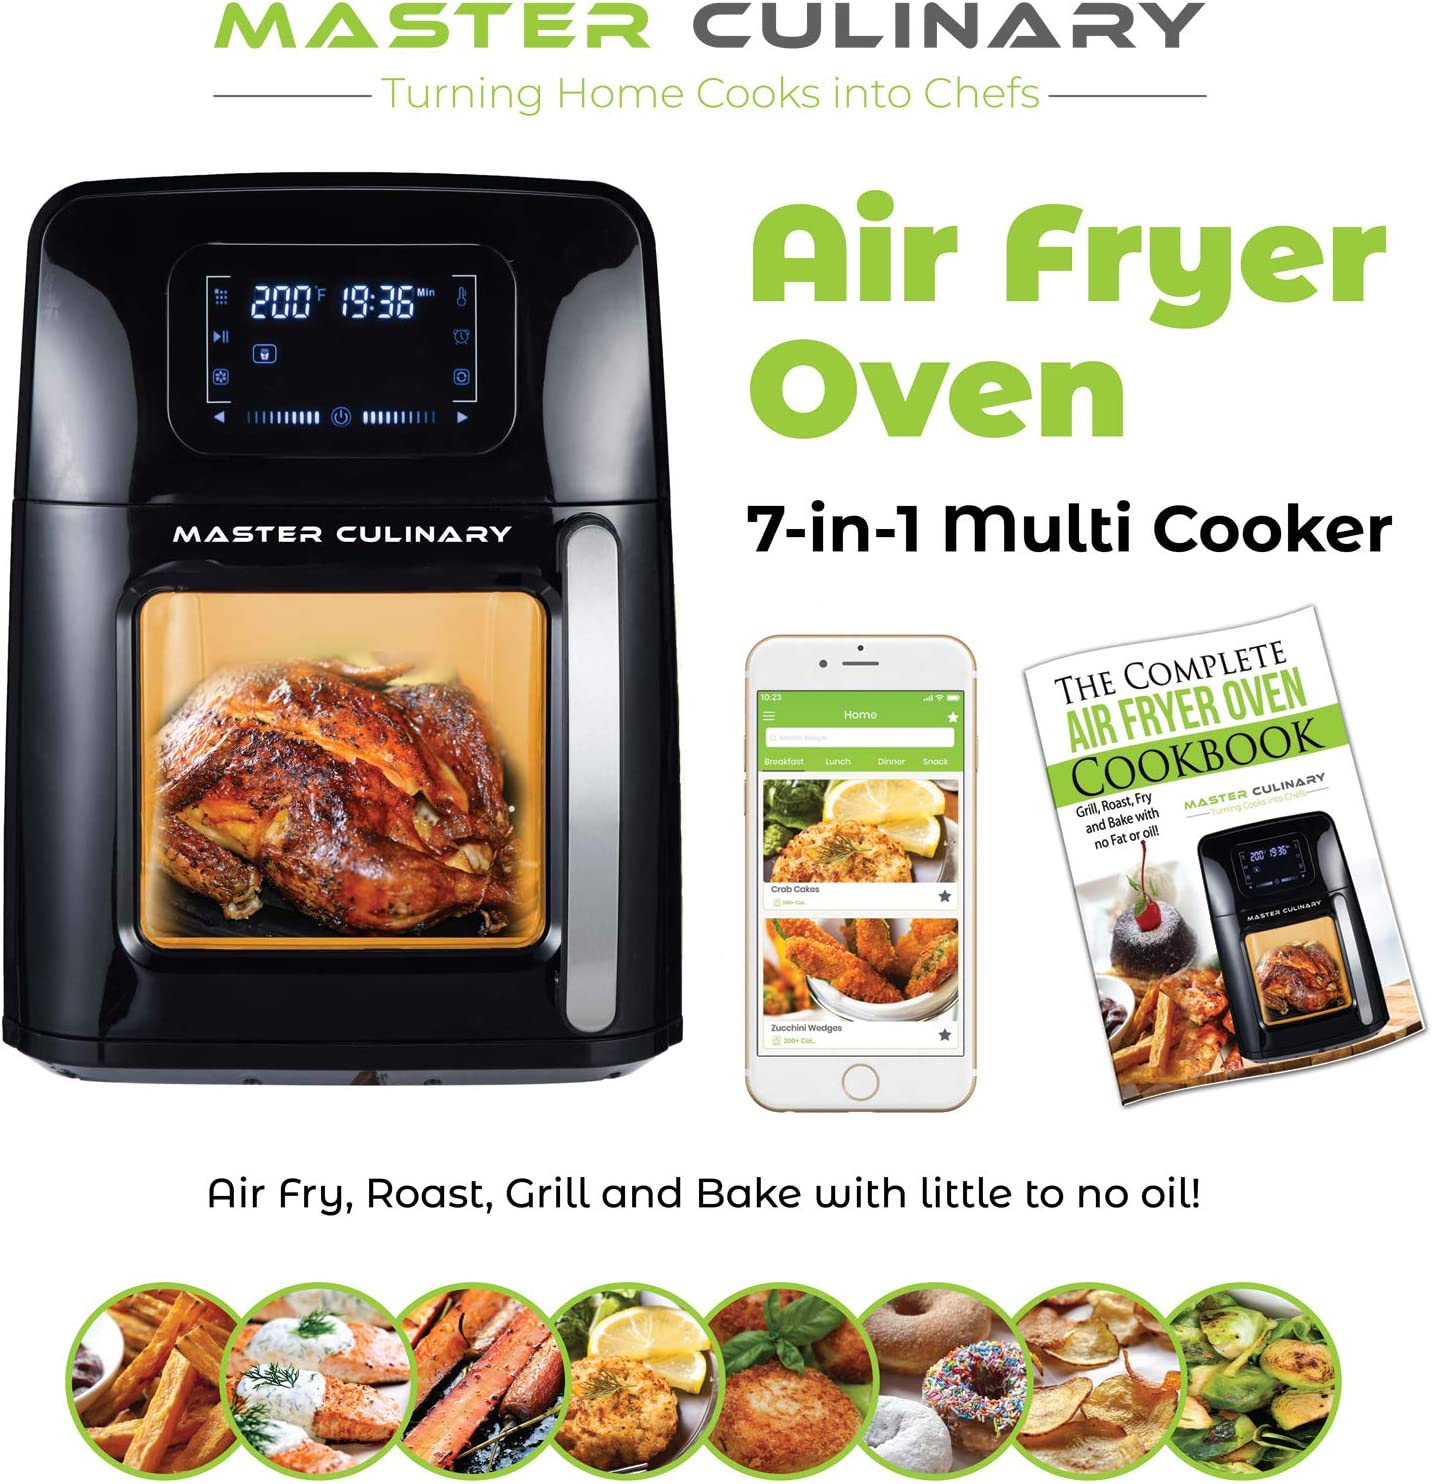 Air Fryer Oven A-1700   12 Quarts - Biggest in the Market!   7 in 1 Cooker   Mobile App and Recipe Book Included   Super-Heated Air Technology   Modern Design, Very Quiet, 12 Preset Programs, 1700W, Extended One Year Warranty   2020 Model   By TheMasterCulinary